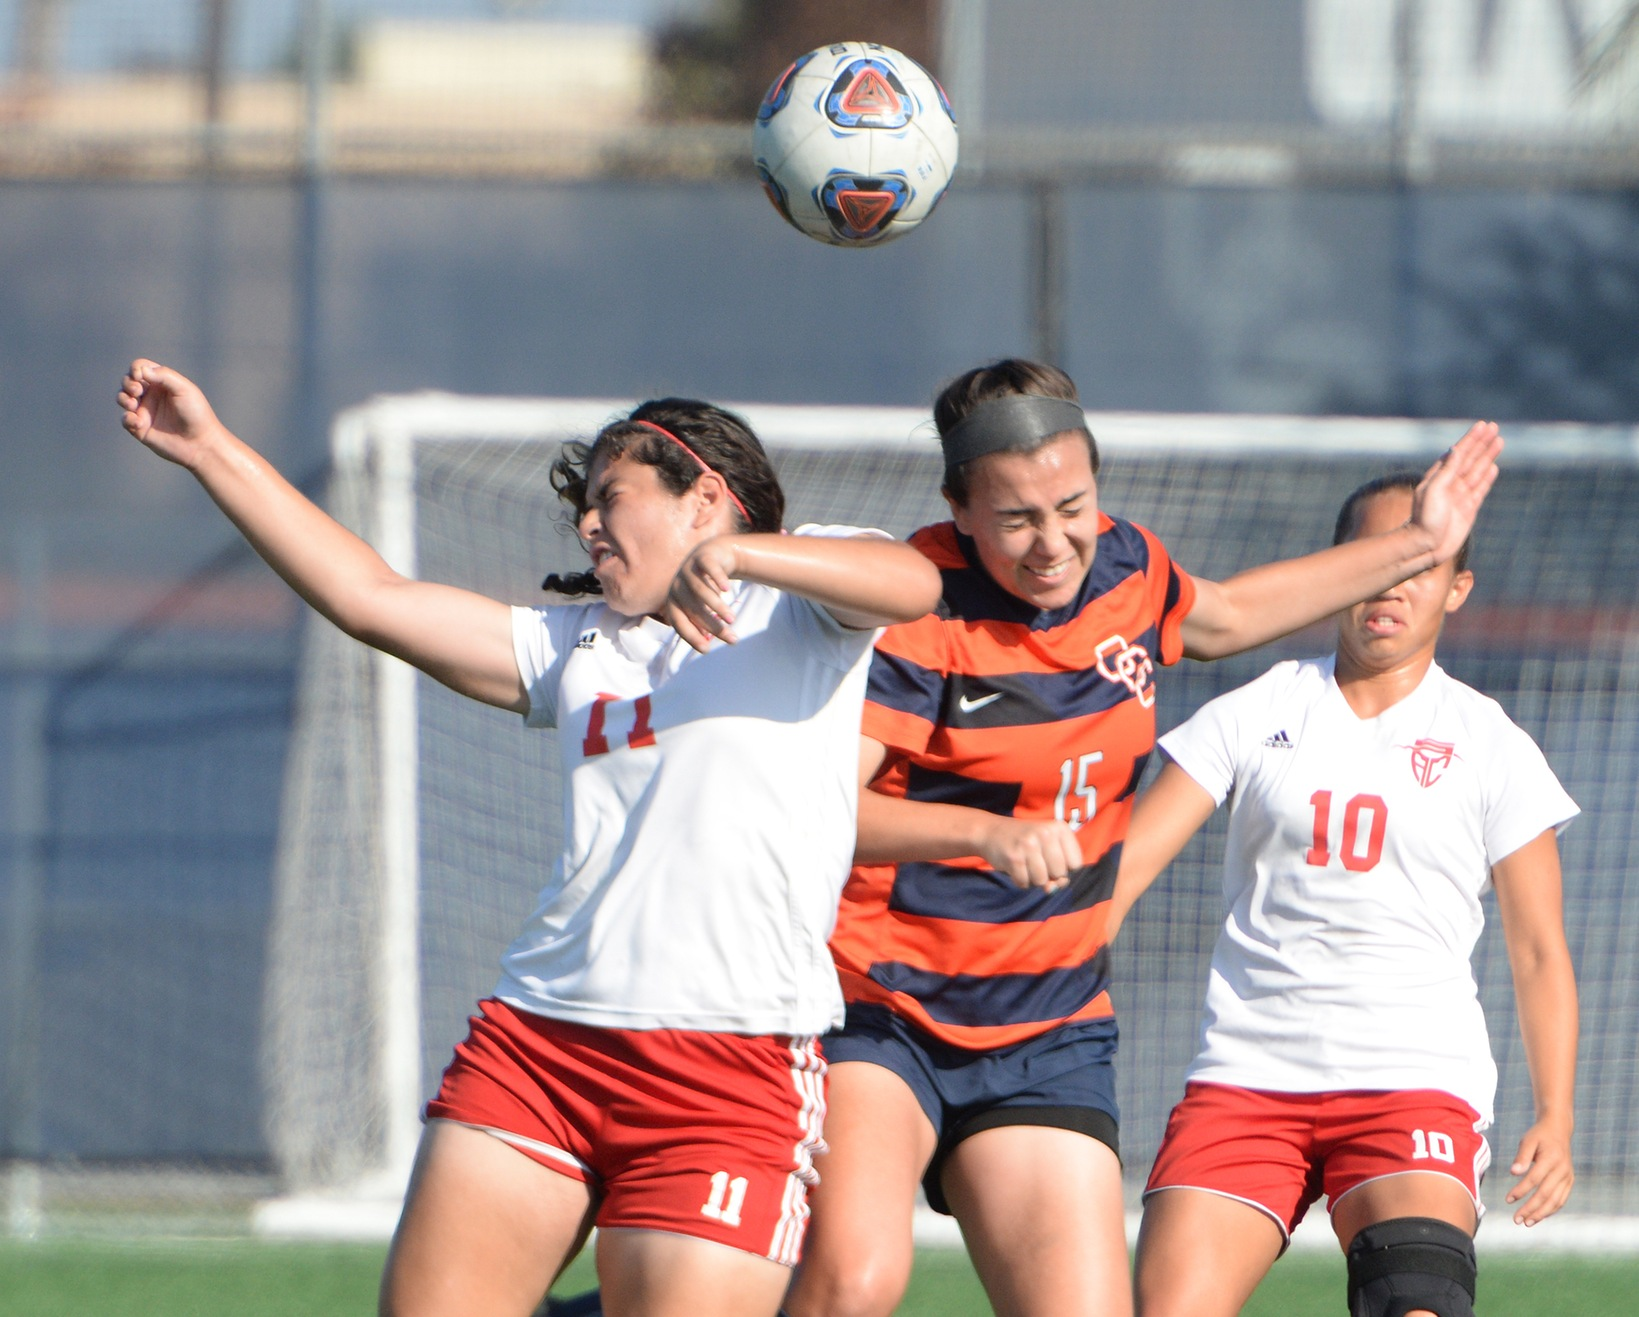 Late goal propels Pirates past Mustangs, 1-0